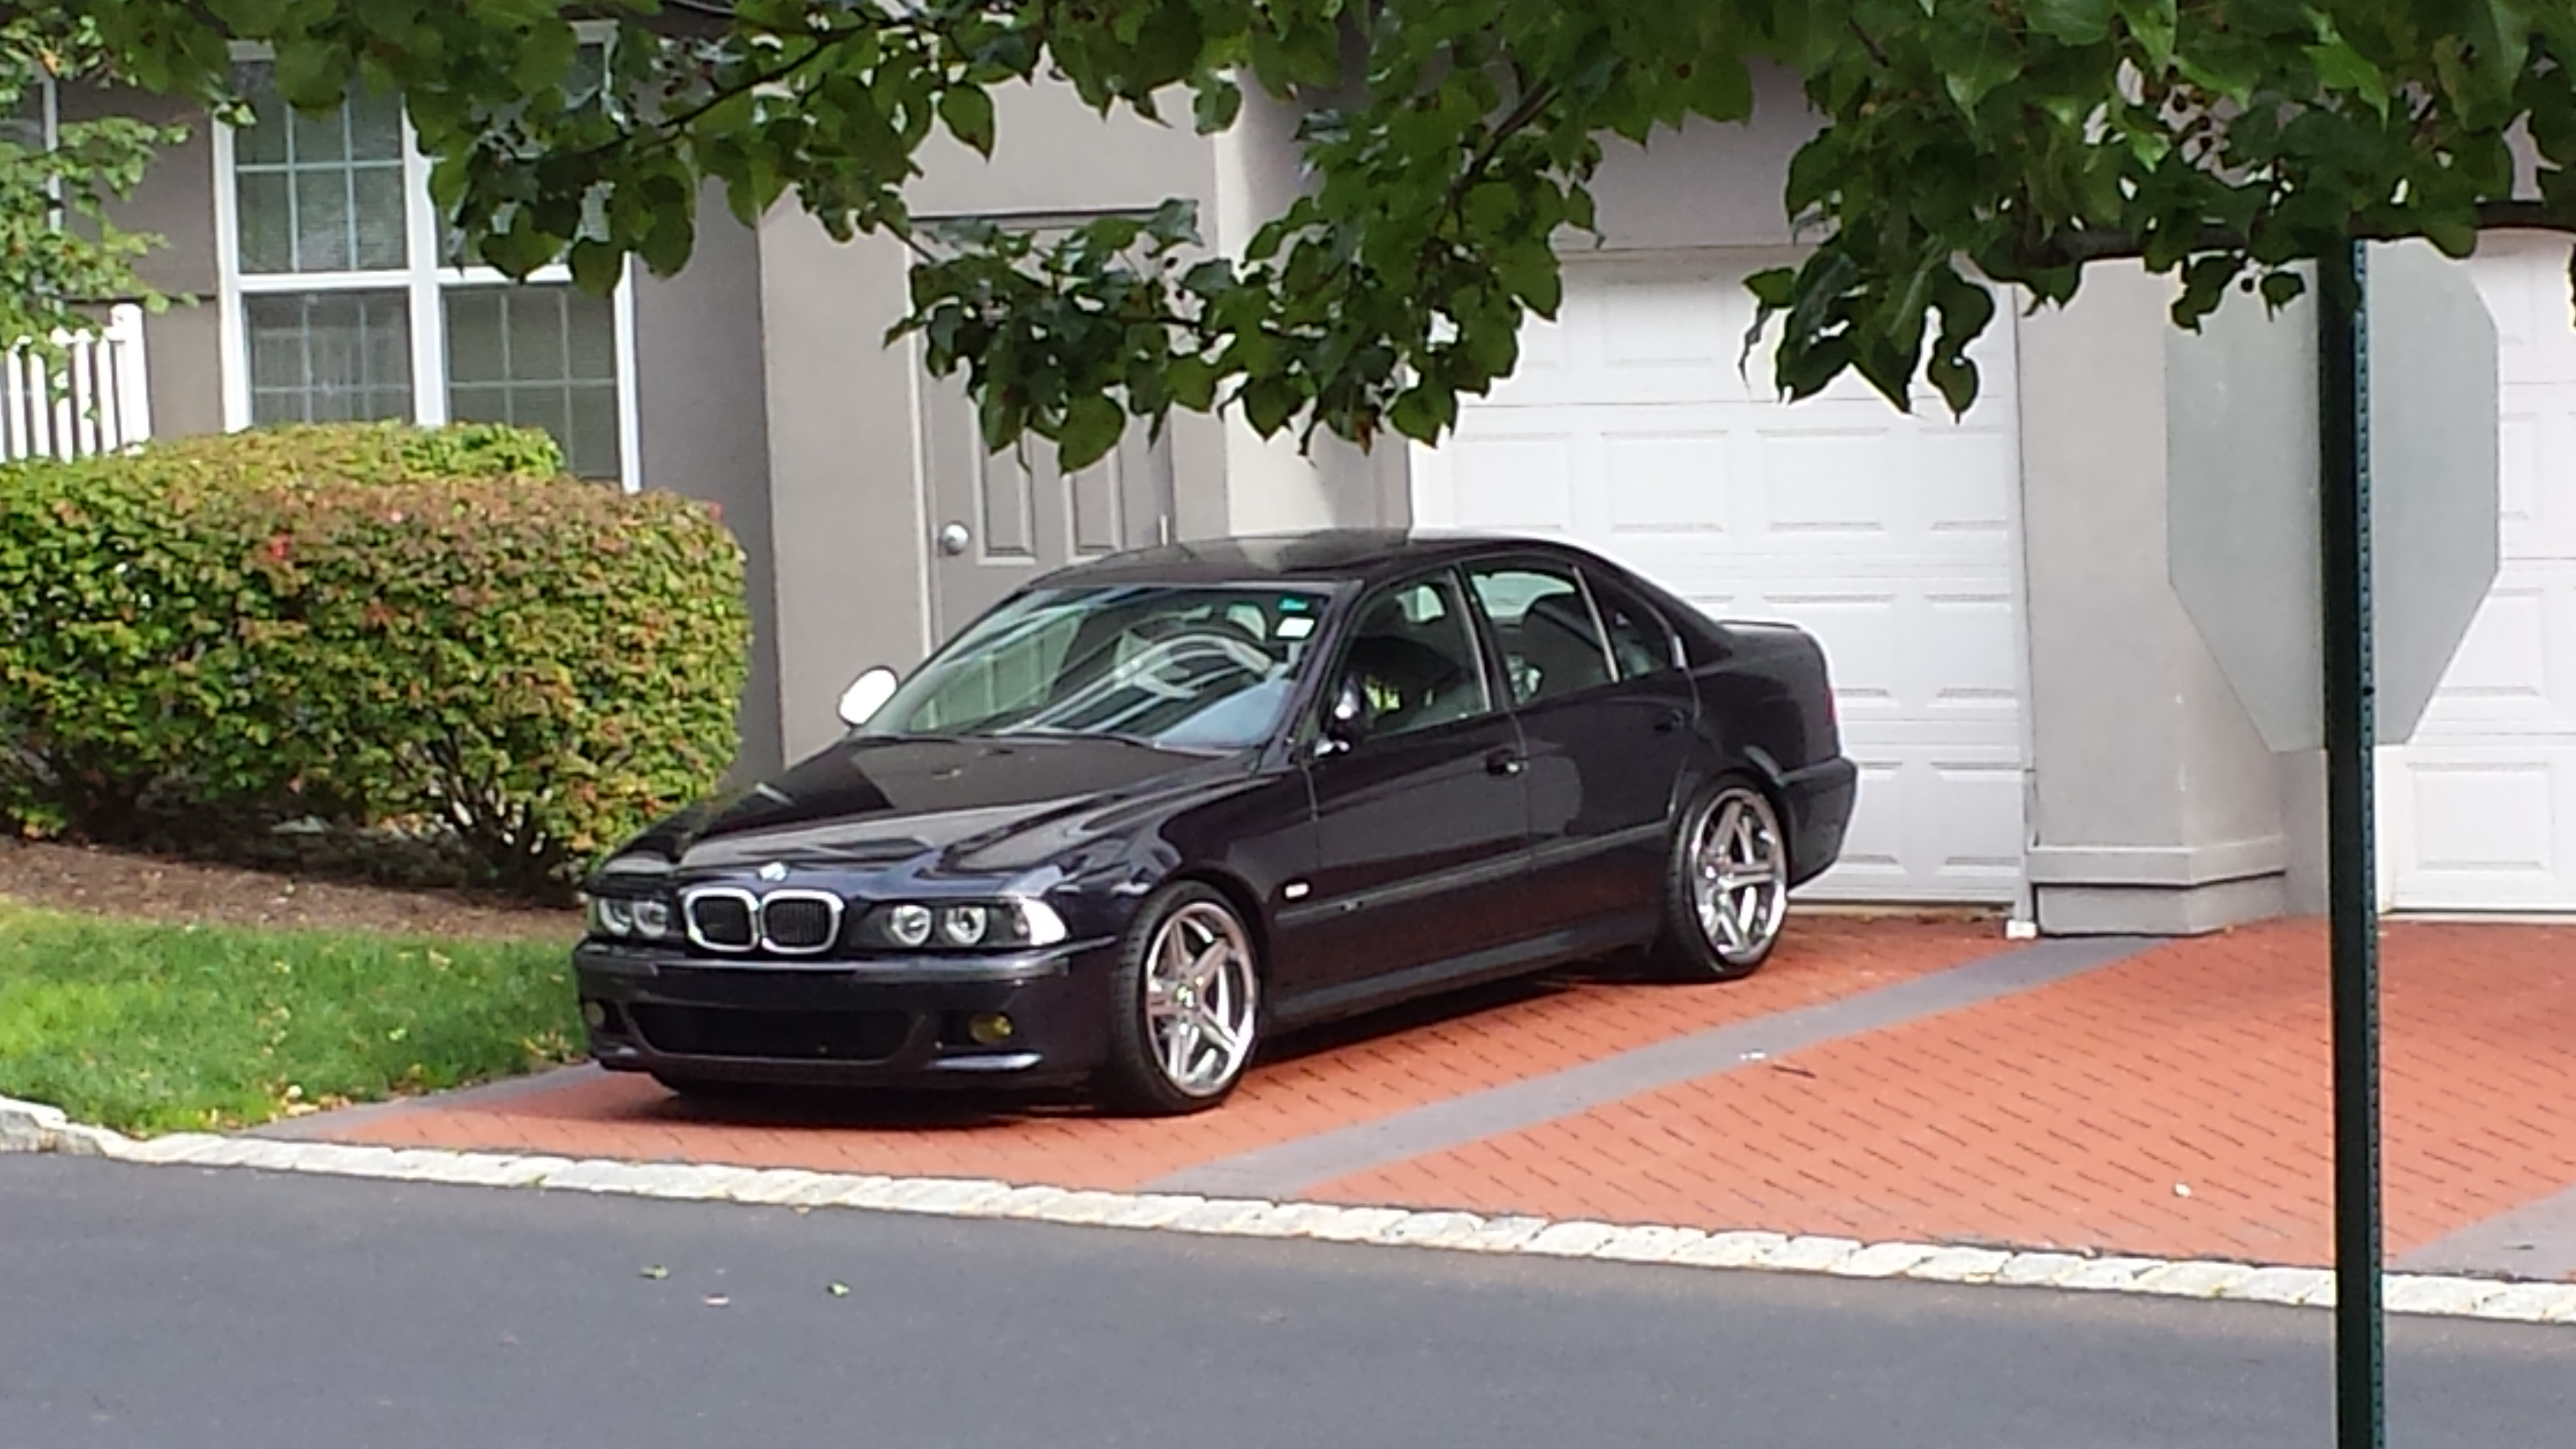 Owners - Post pictures of your cars here.-20131008_154941.jpg